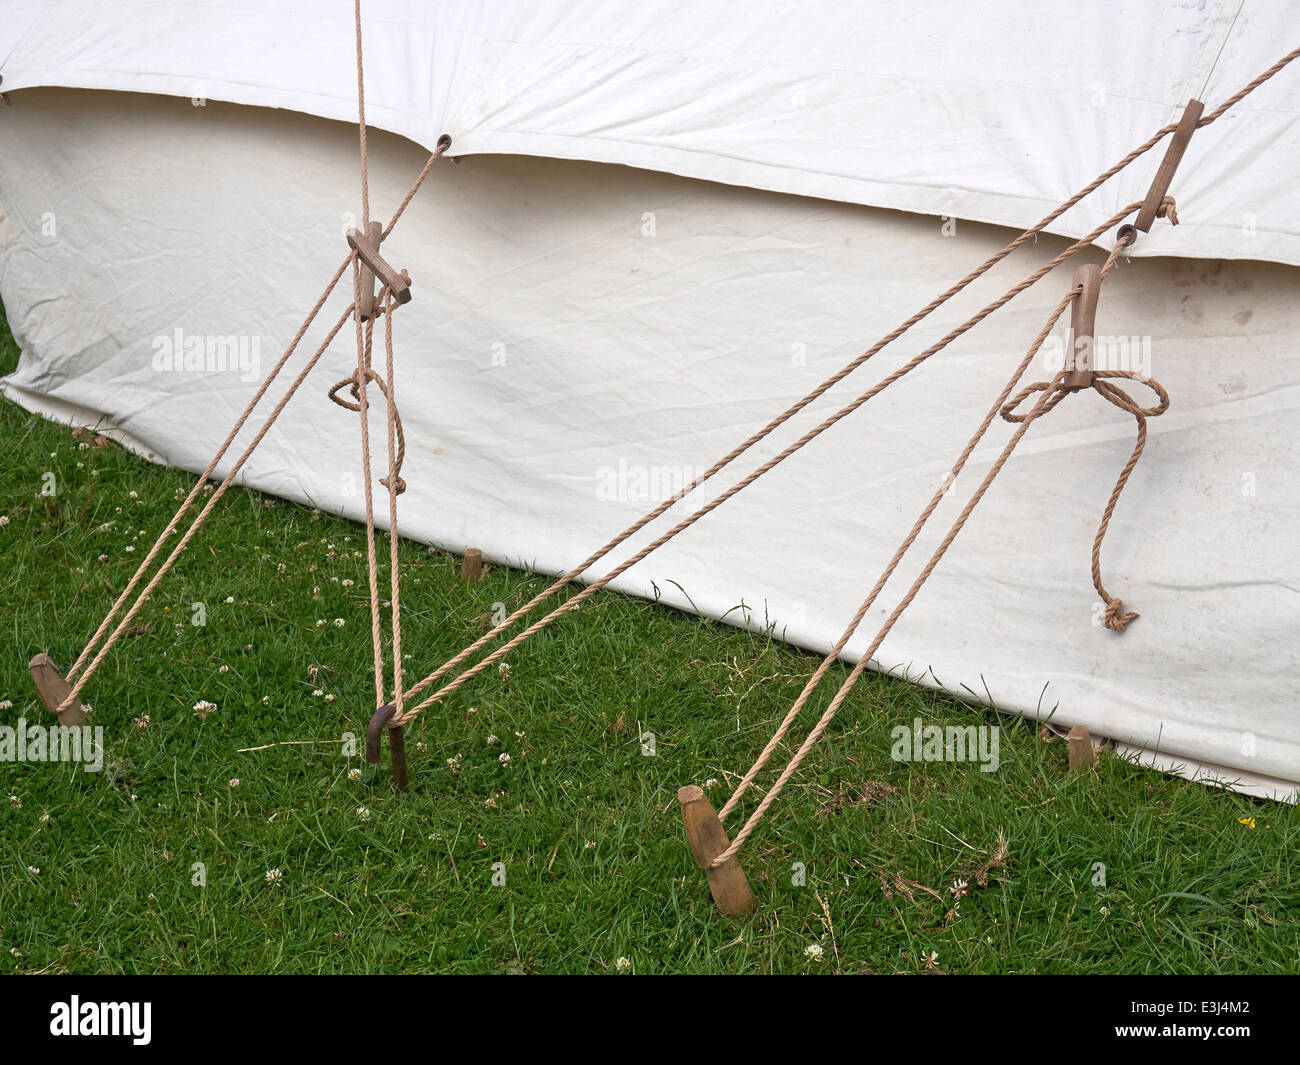 Old style canvas tent showing rope guy lines and carved wooden tent pegs. & Old style canvas tent showing rope guy lines and carved wooden tent ...